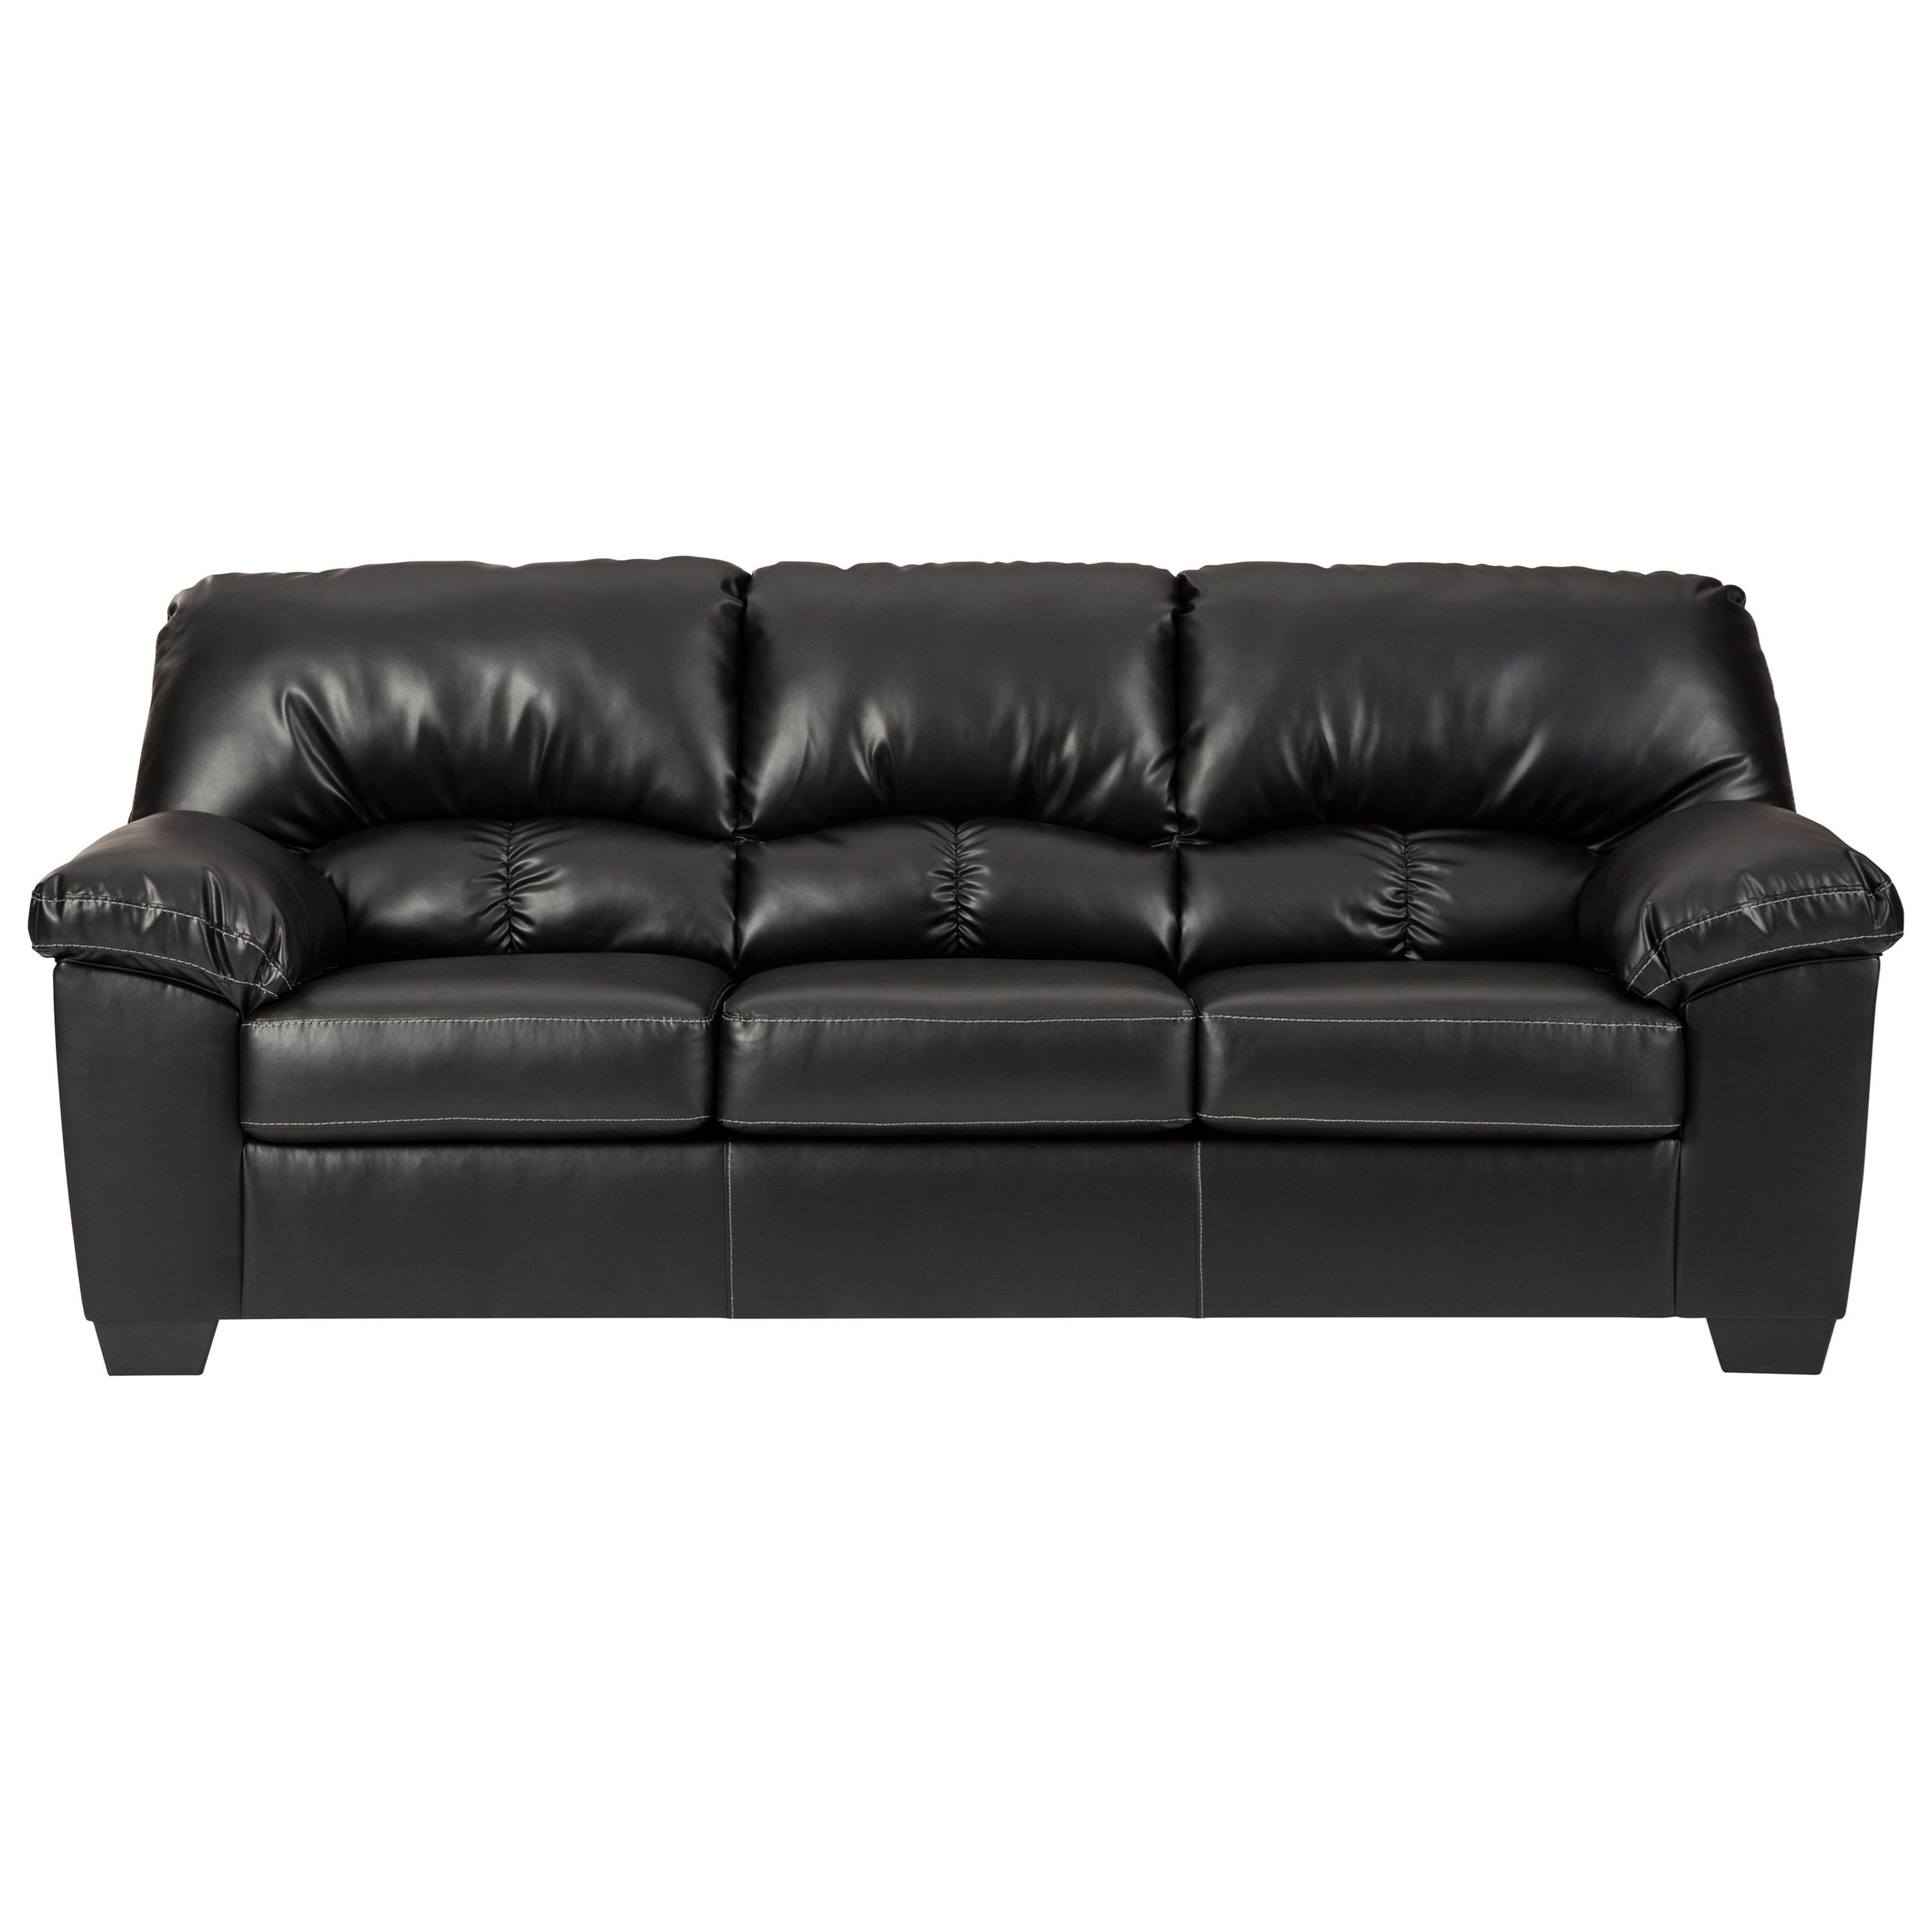 Benchcraft Brazoria Casual Faux Leather Sofa Value City Furniture Sofas